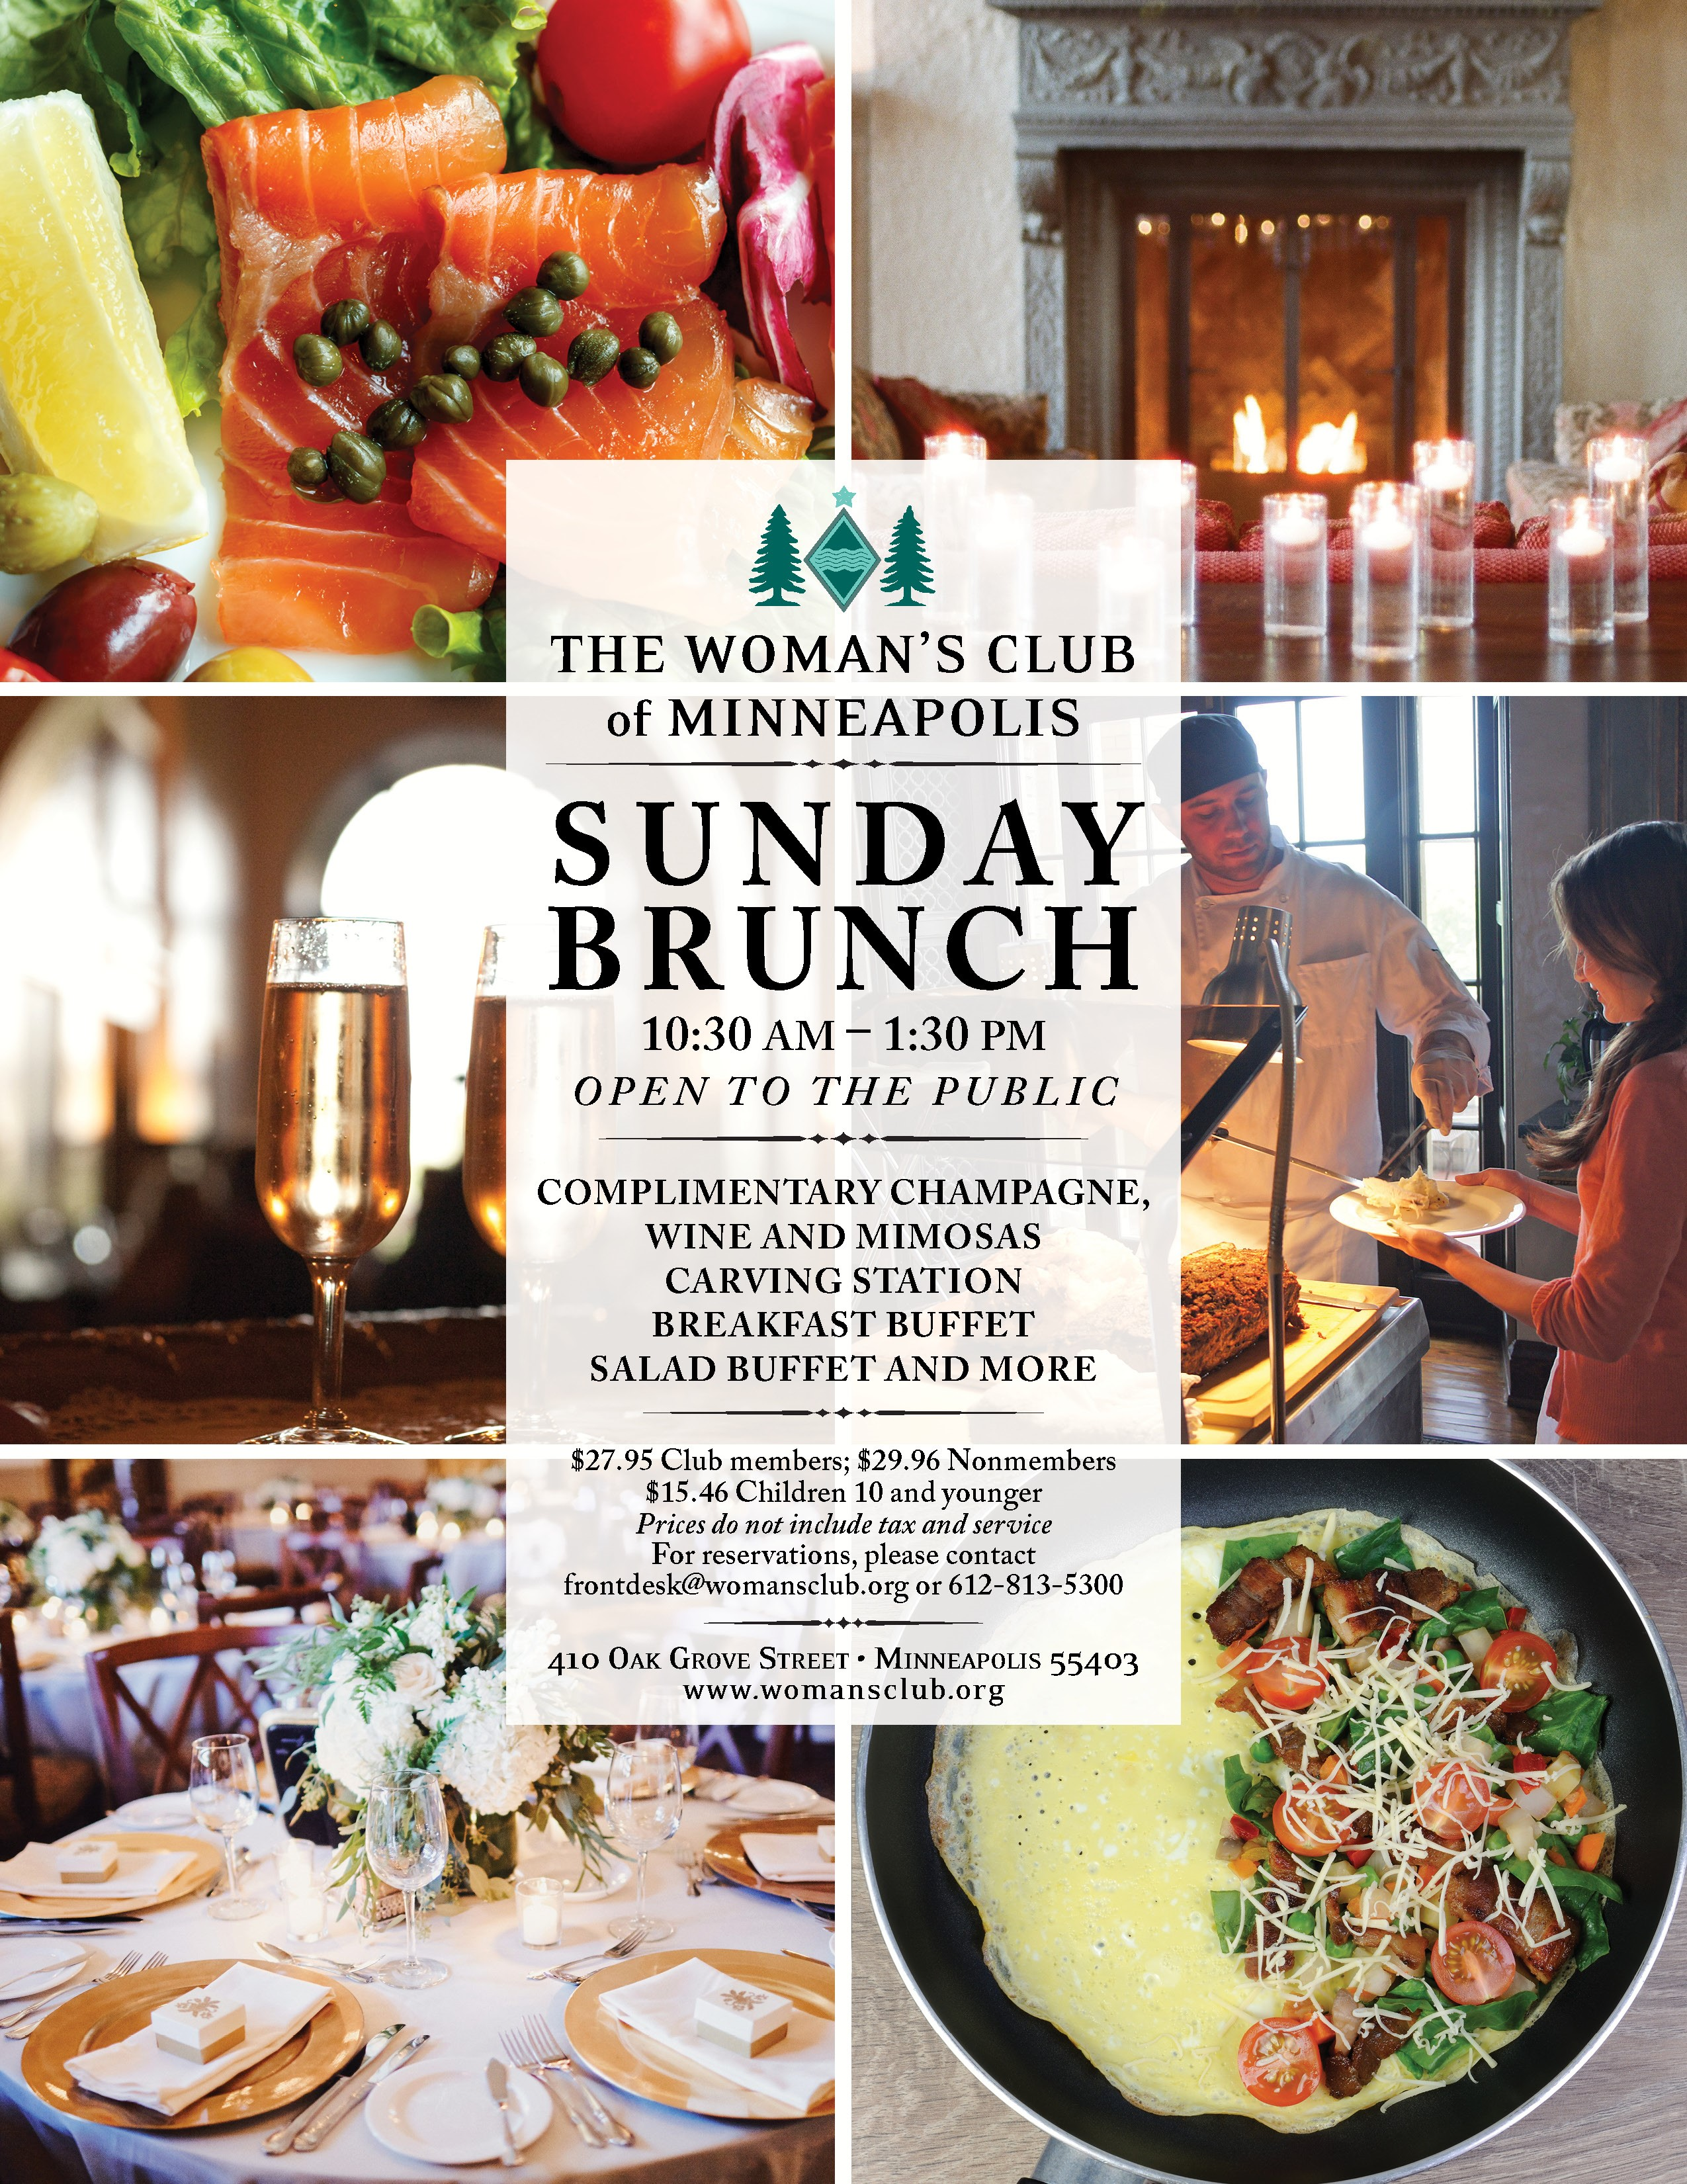 Sunday Brunch Buffet at The Woman's Club of Minneapolis ...